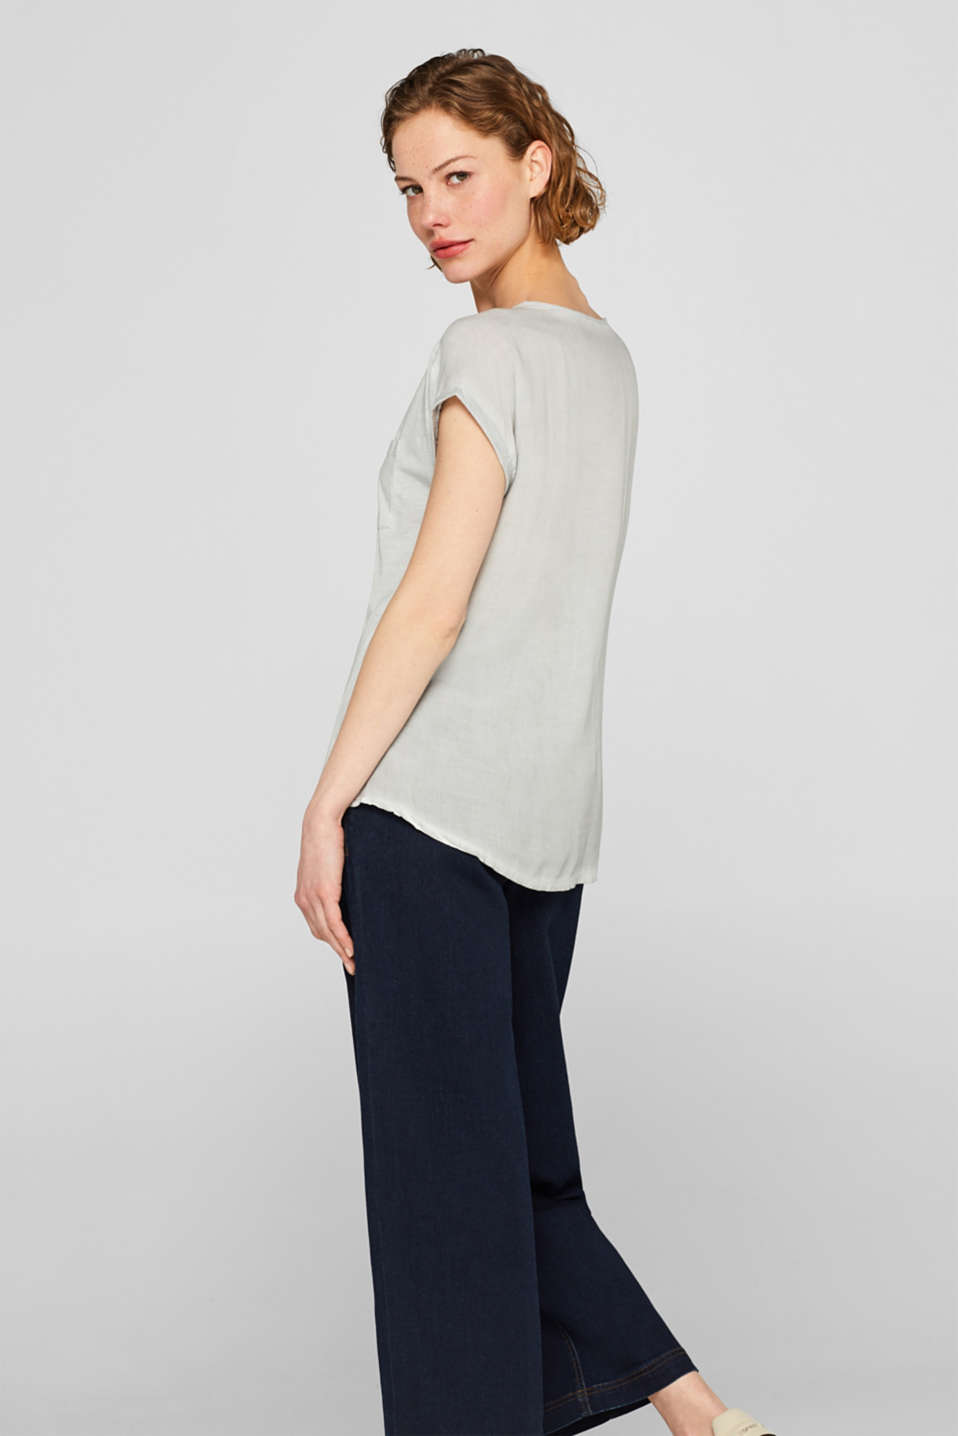 T-shirt in blended fabric with a breast pocket, LIGHT GREY, detail image number 3